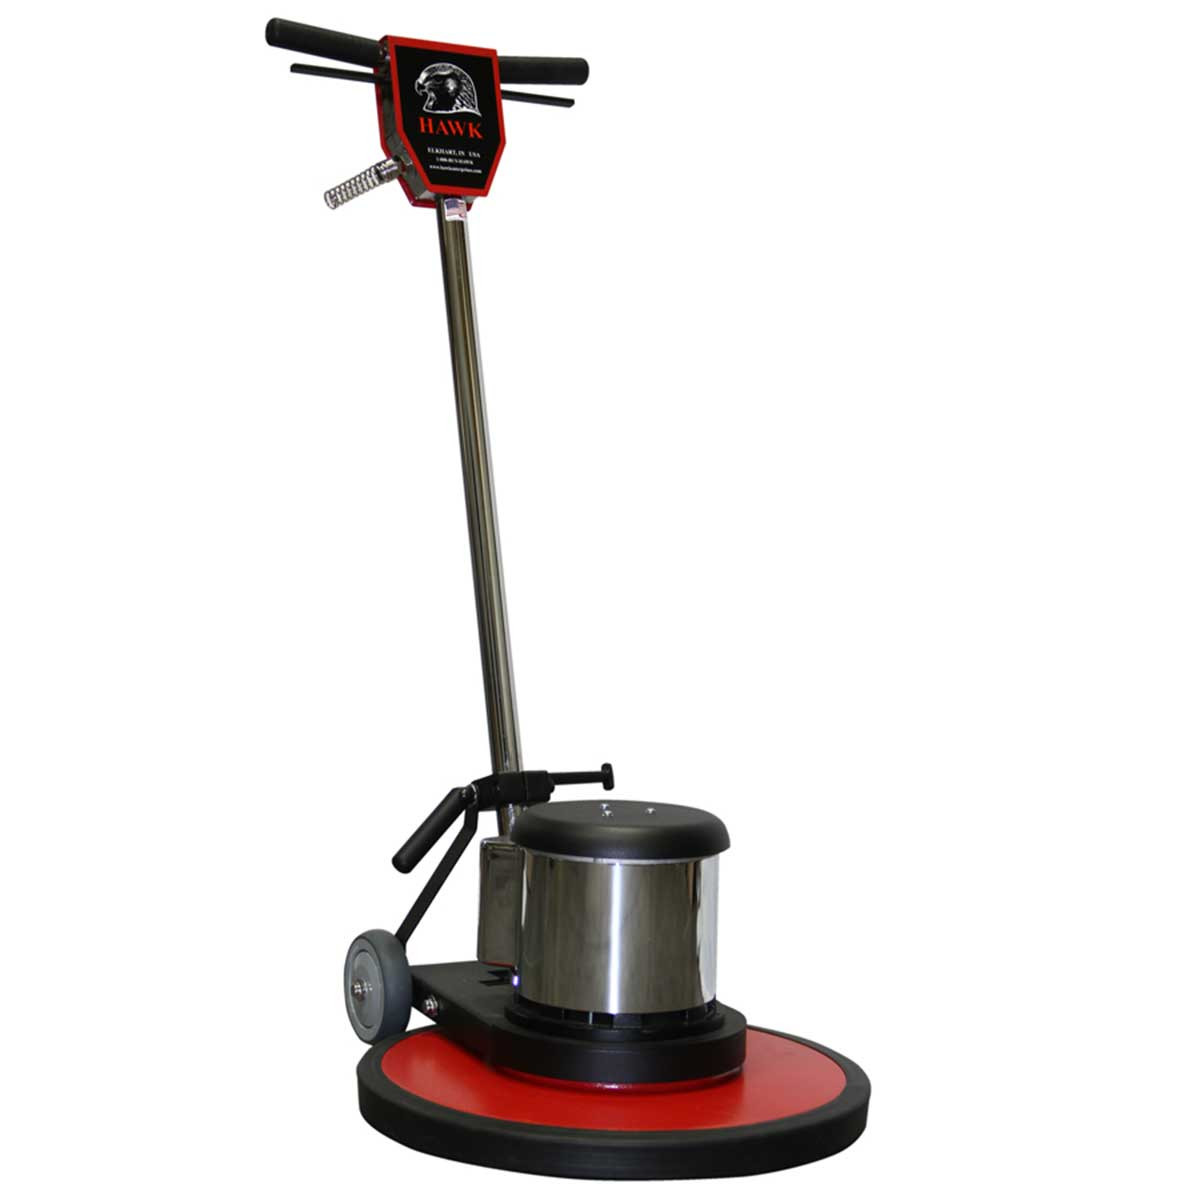 Hawk Heavy Duty Floor Machine